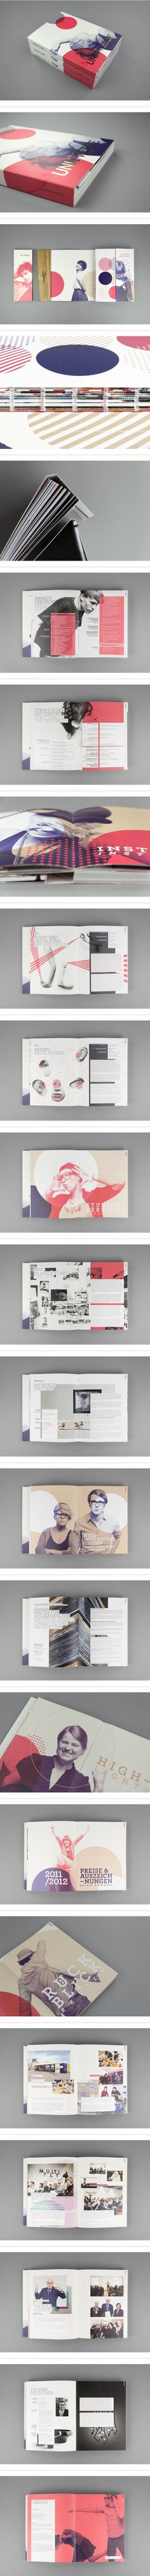 UNI:VERSE 2012 by MOOI design , via Behance